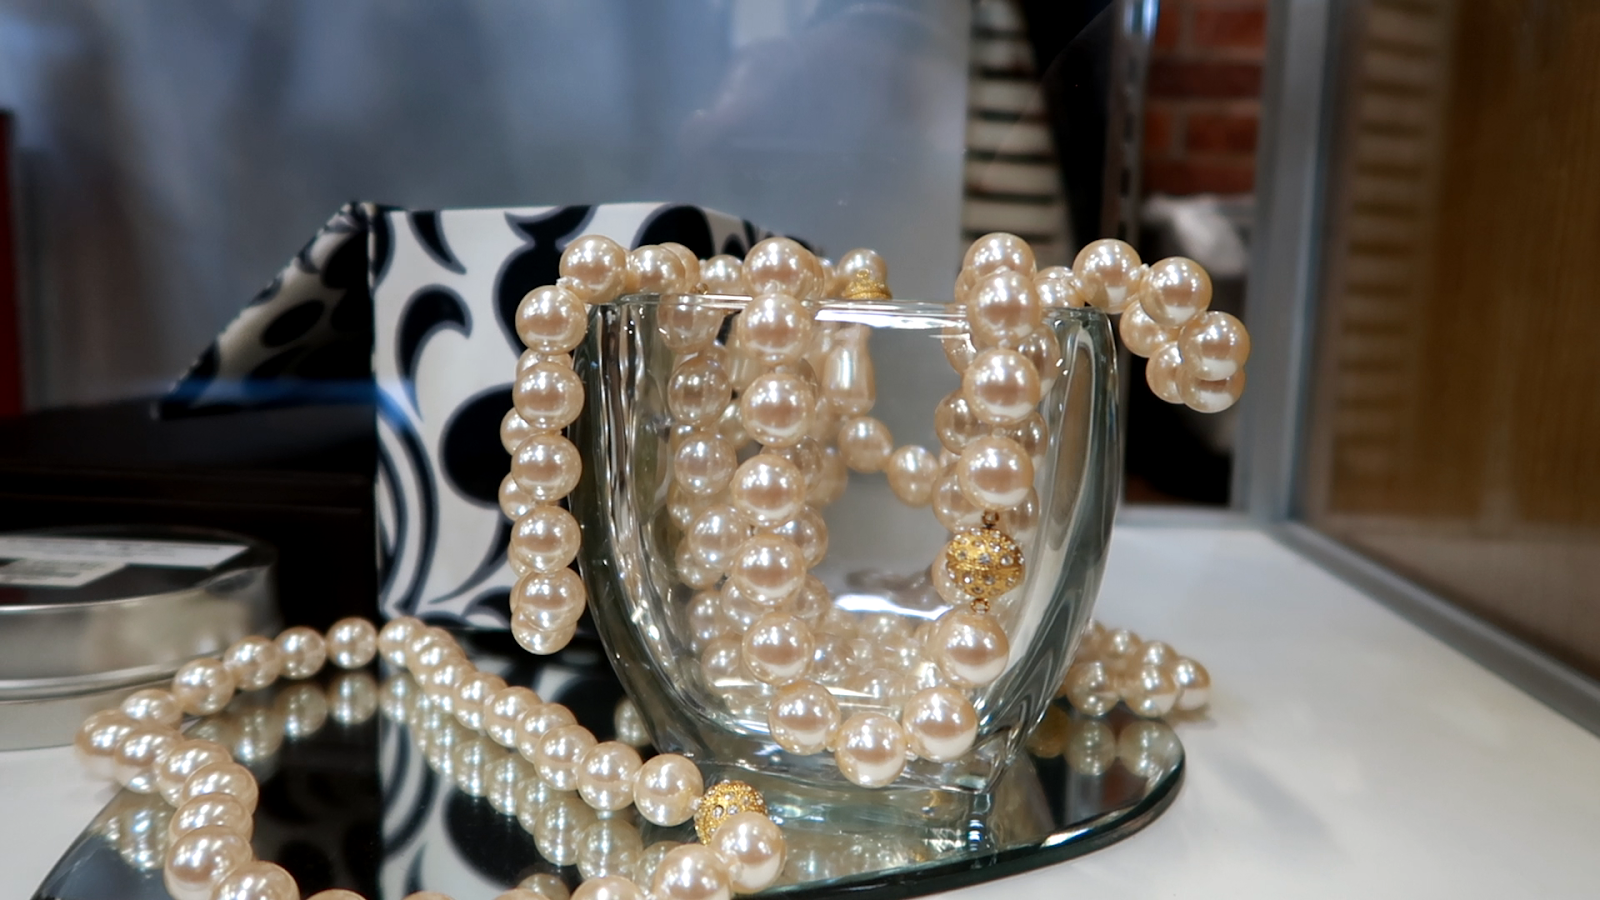 Image: Pearls hanging out a bucket at the thrift store